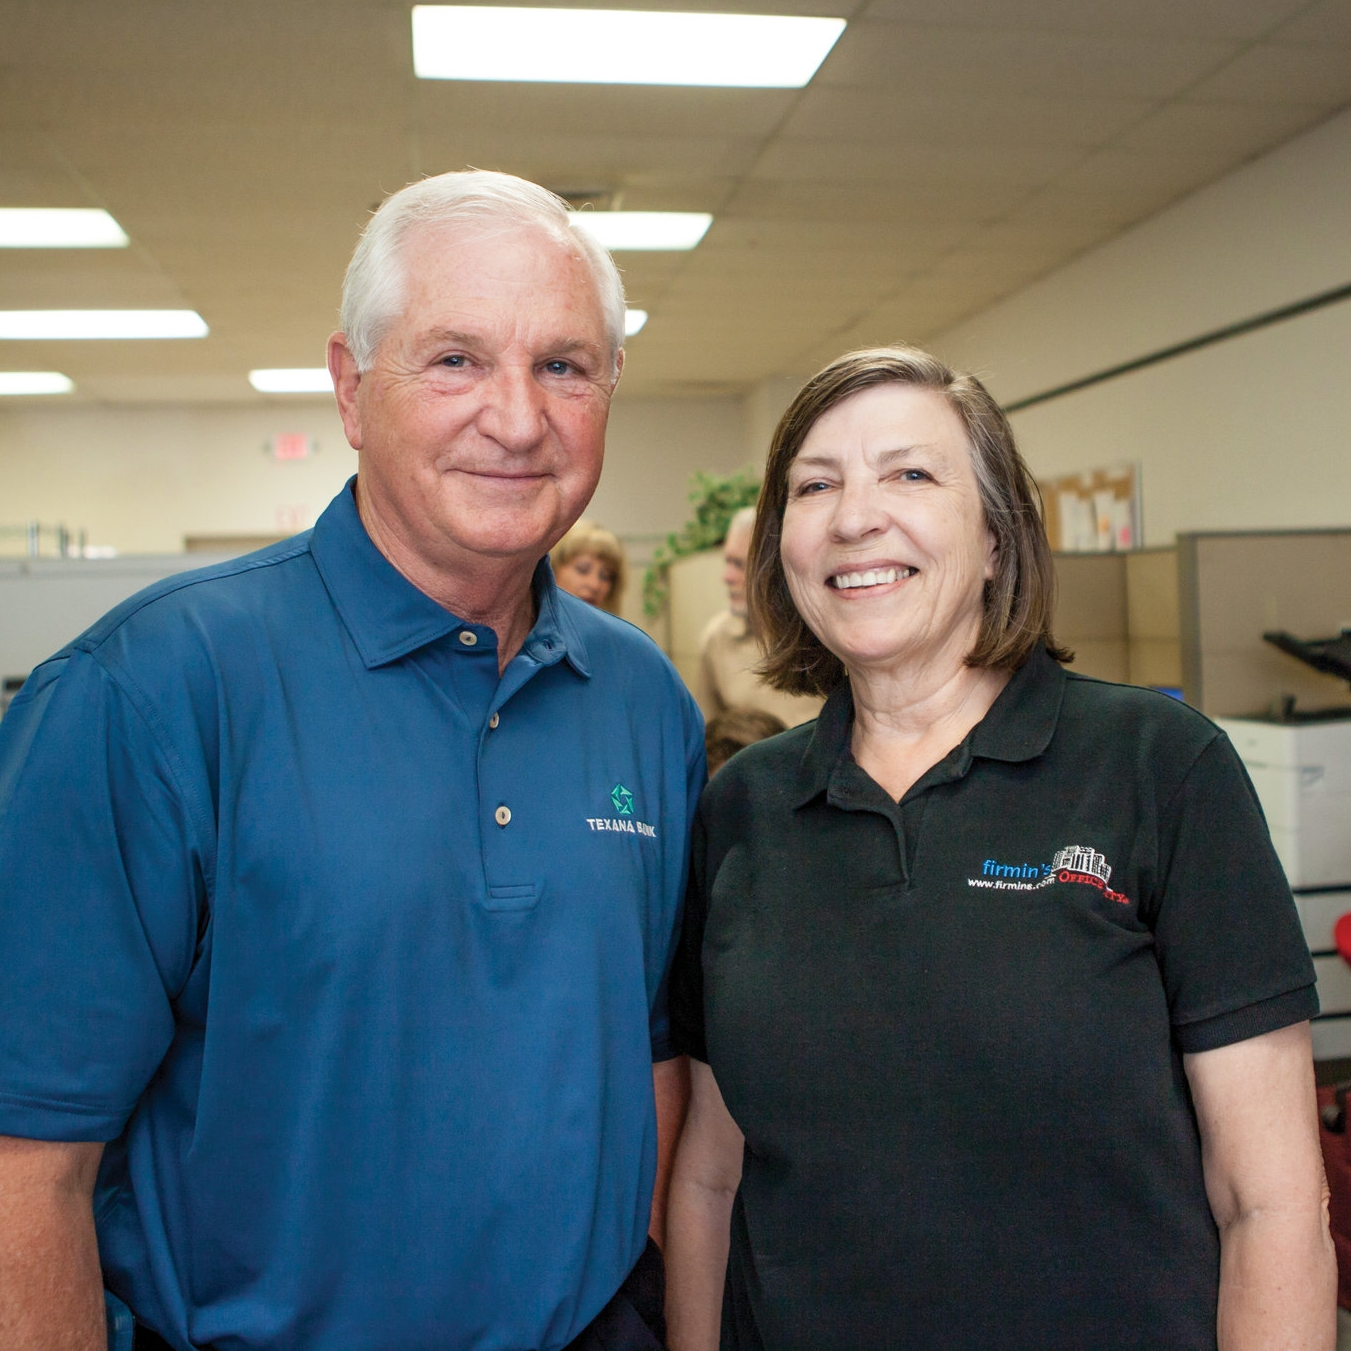 Ted Kelton and Molly Cox